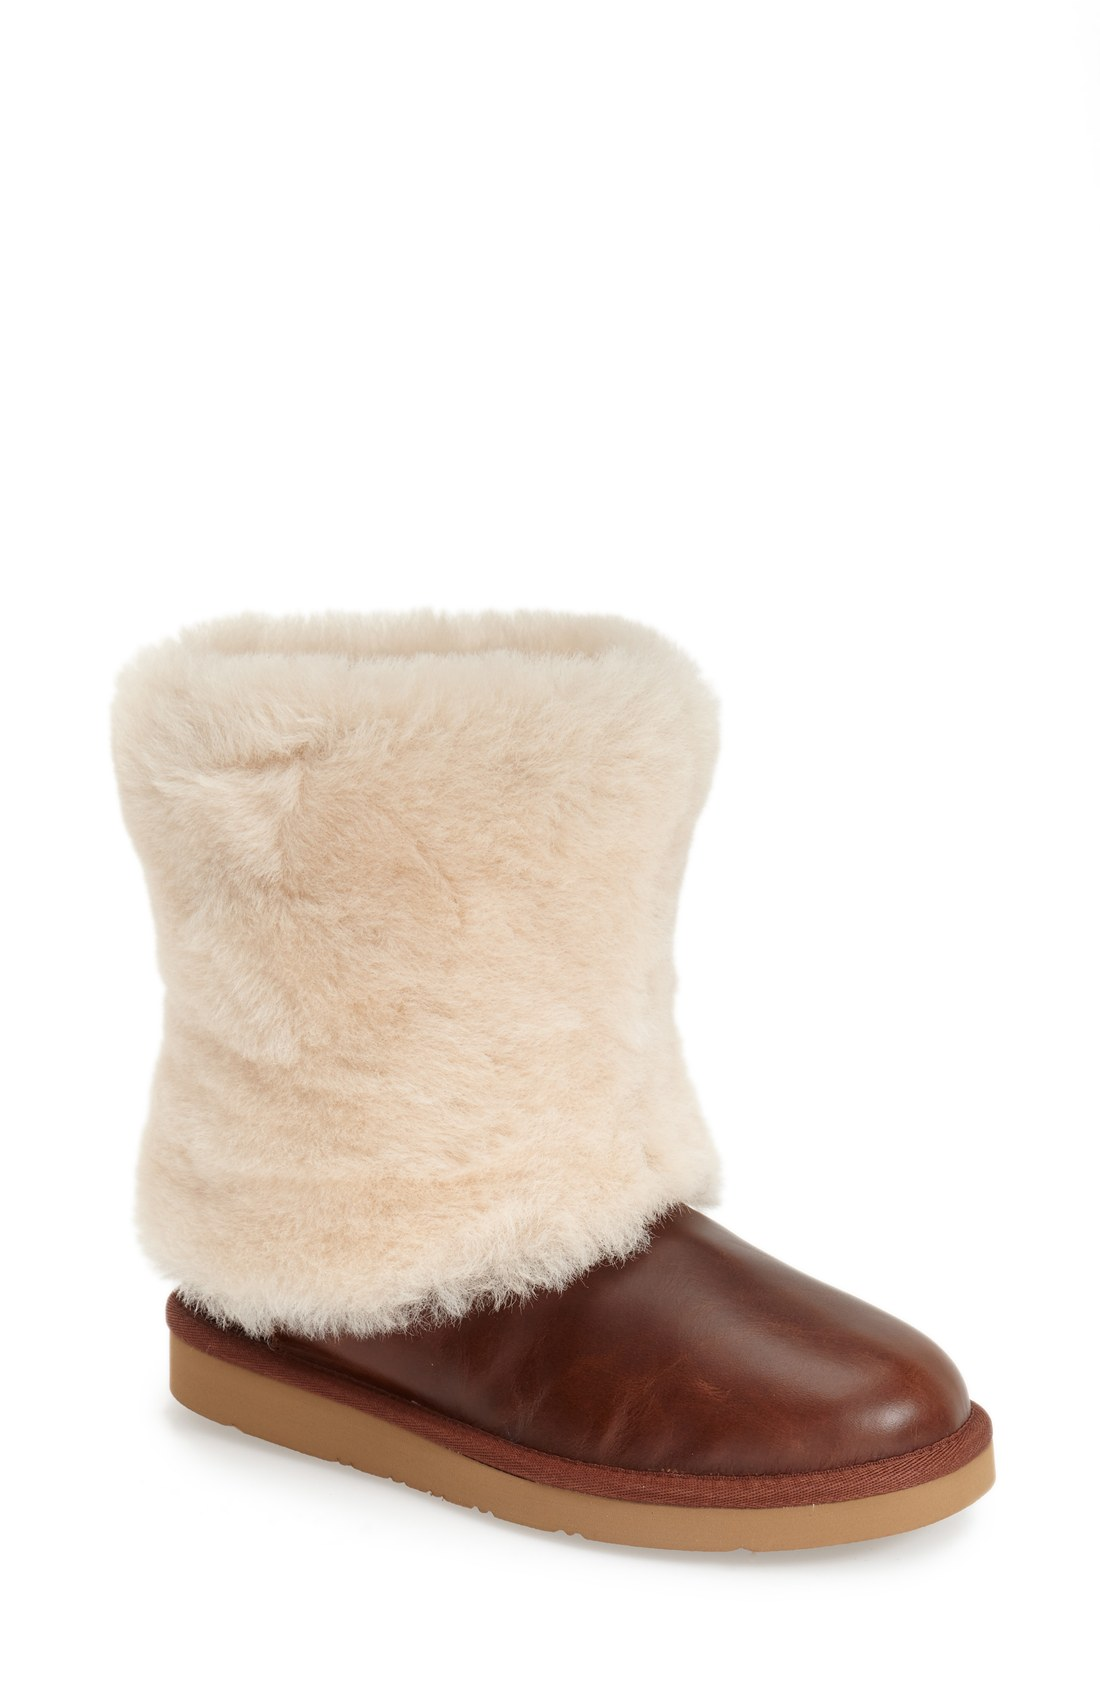 stylish_fashionable_snow_boots_alleygirl_new_york_fashion_blog_ugg_australia